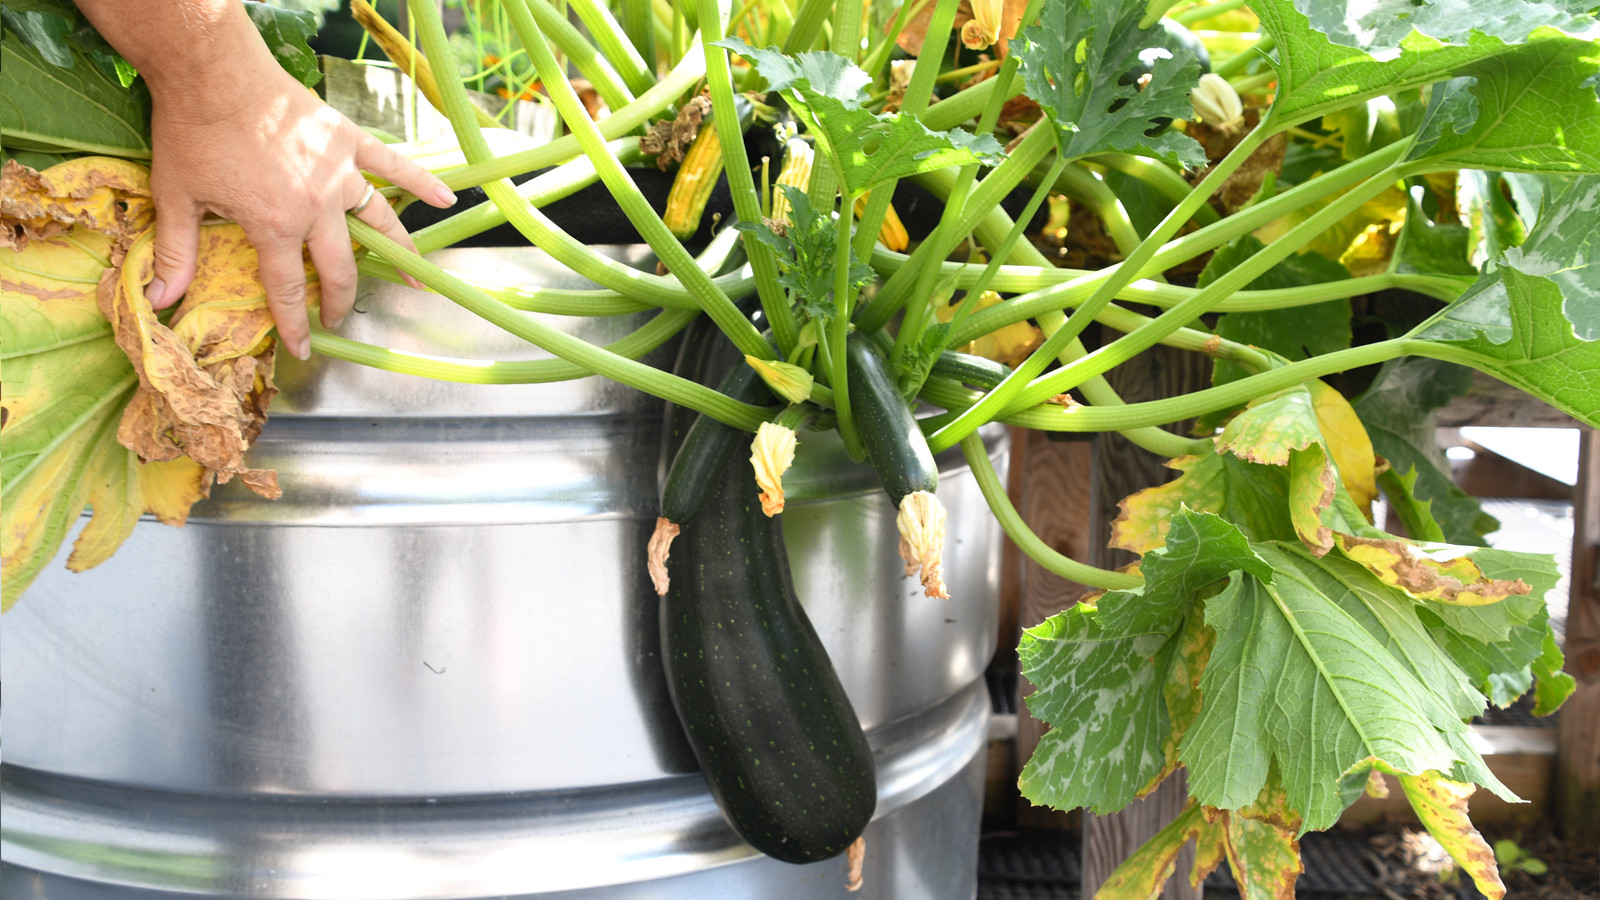 Don't Wait! For A Hardy Harvest, Prepare Your Garden Now